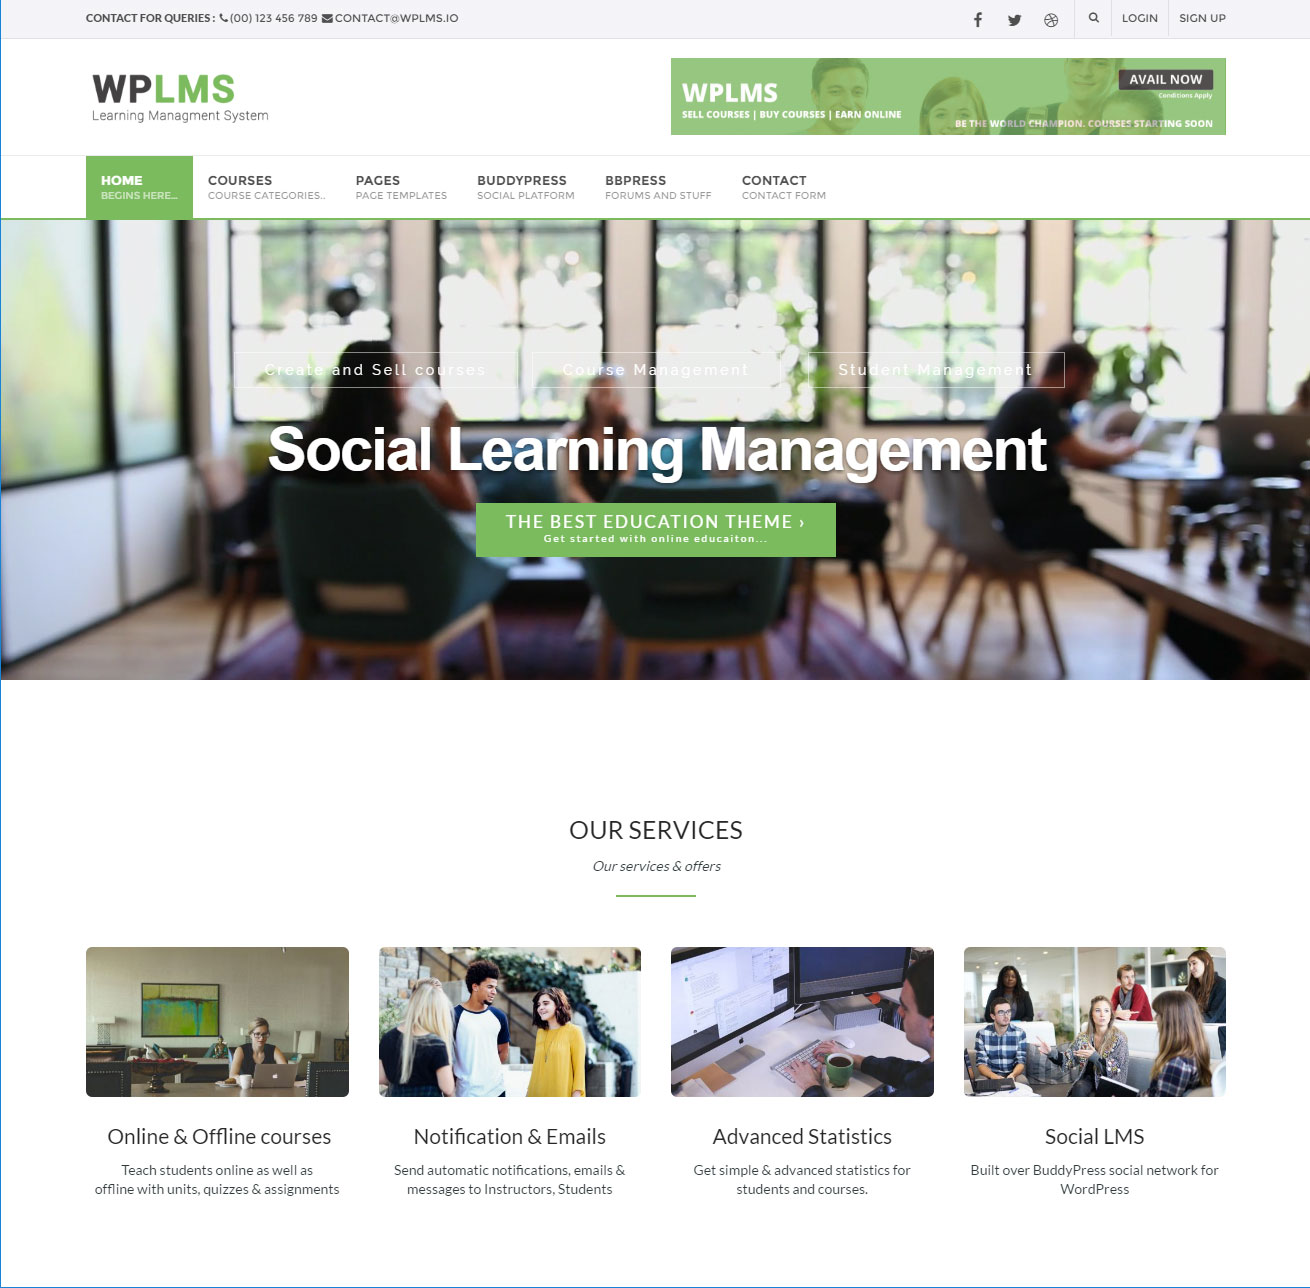 custom_wplms_learning_management_system_knowtion